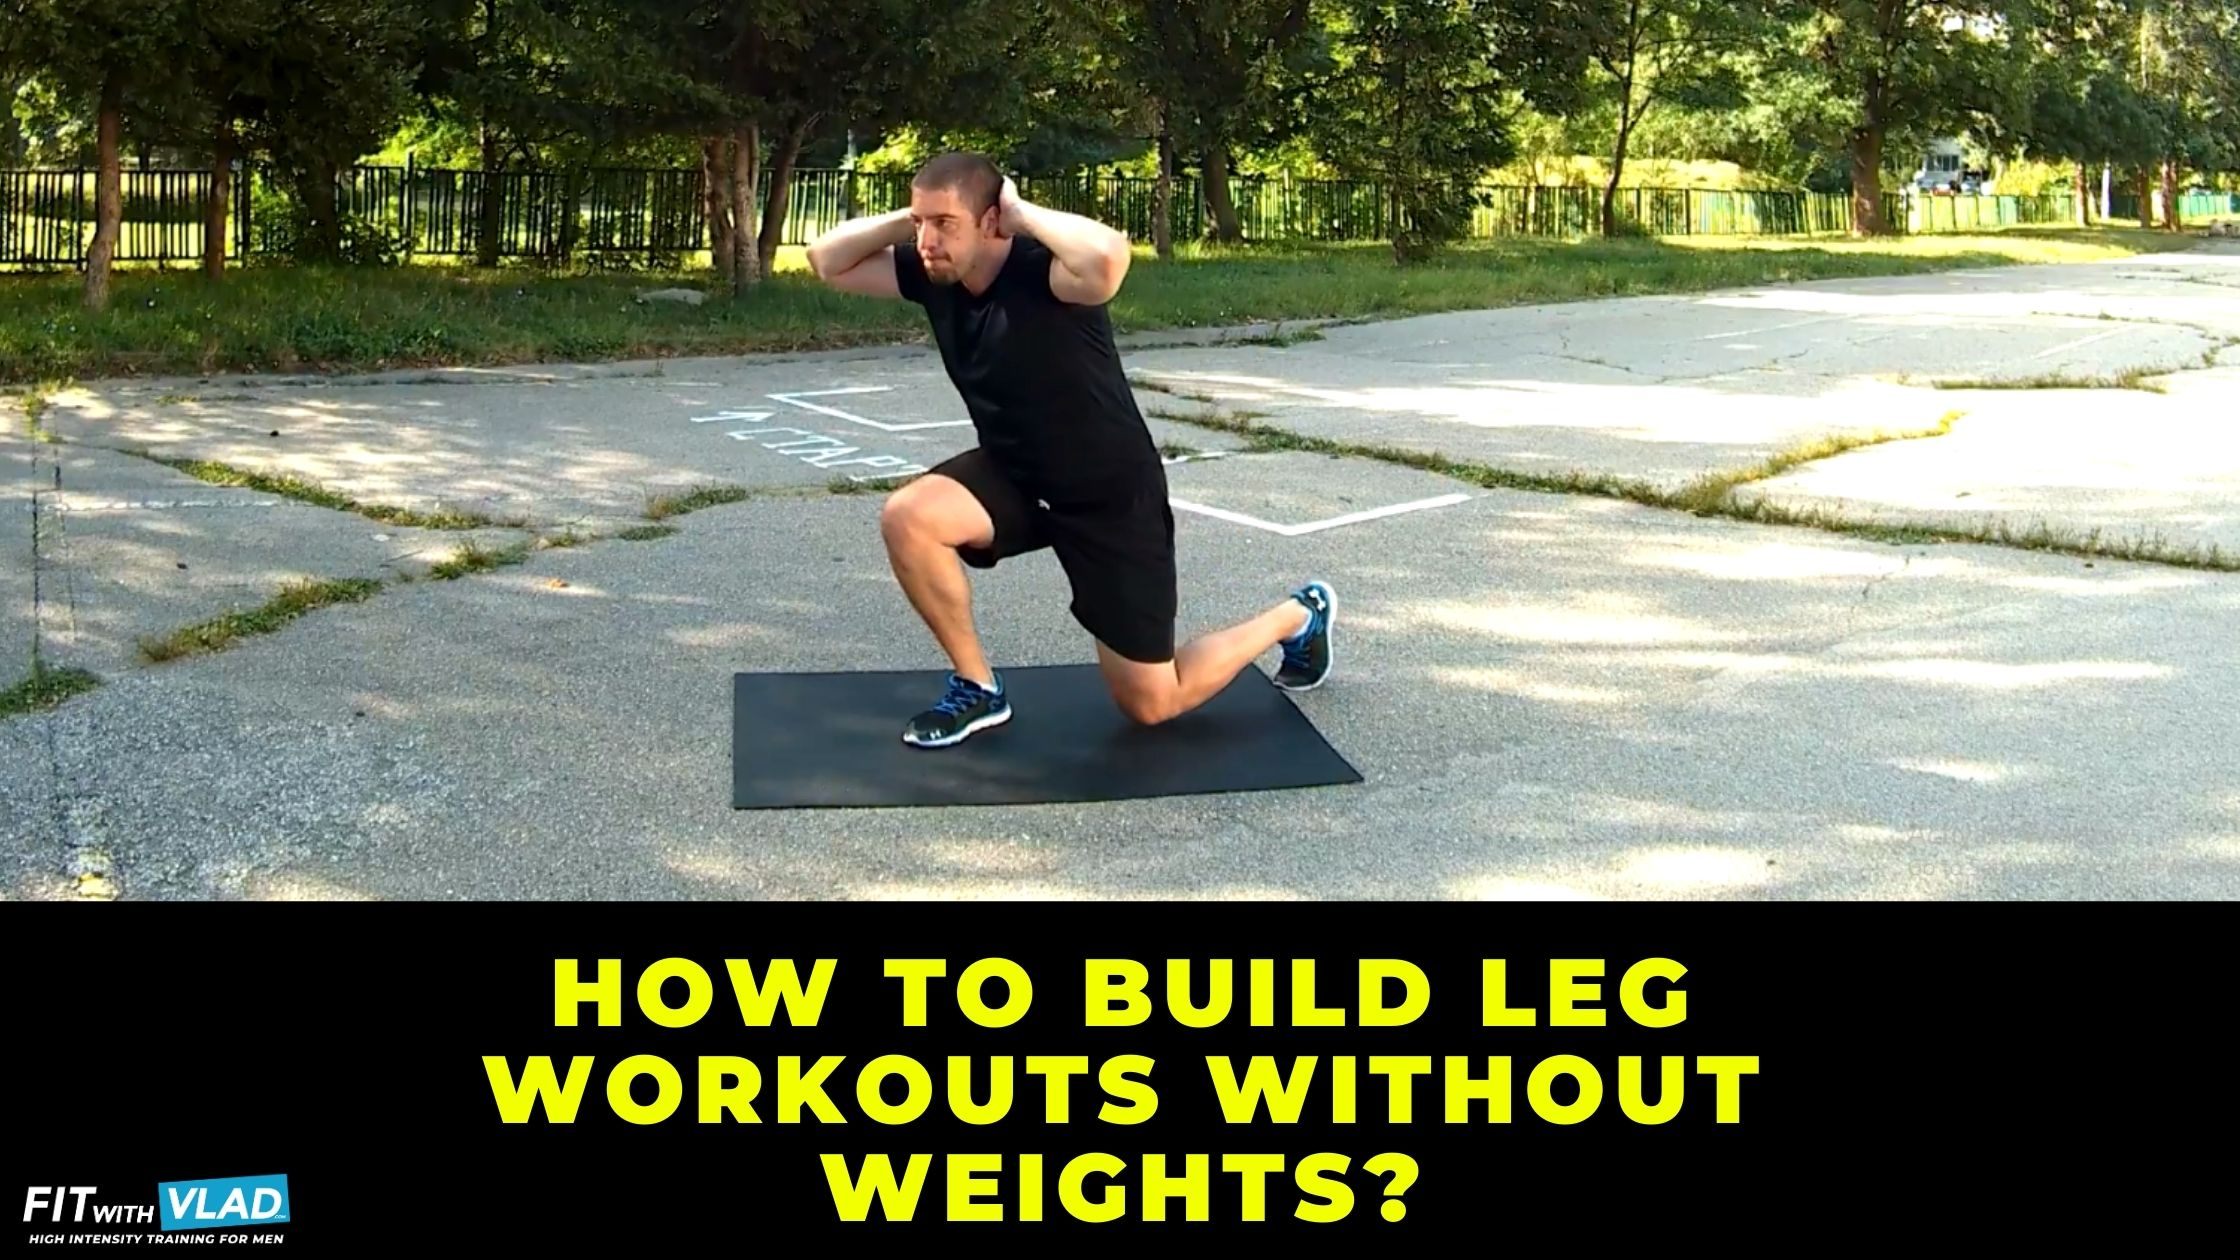 How to build leg workouts without weights